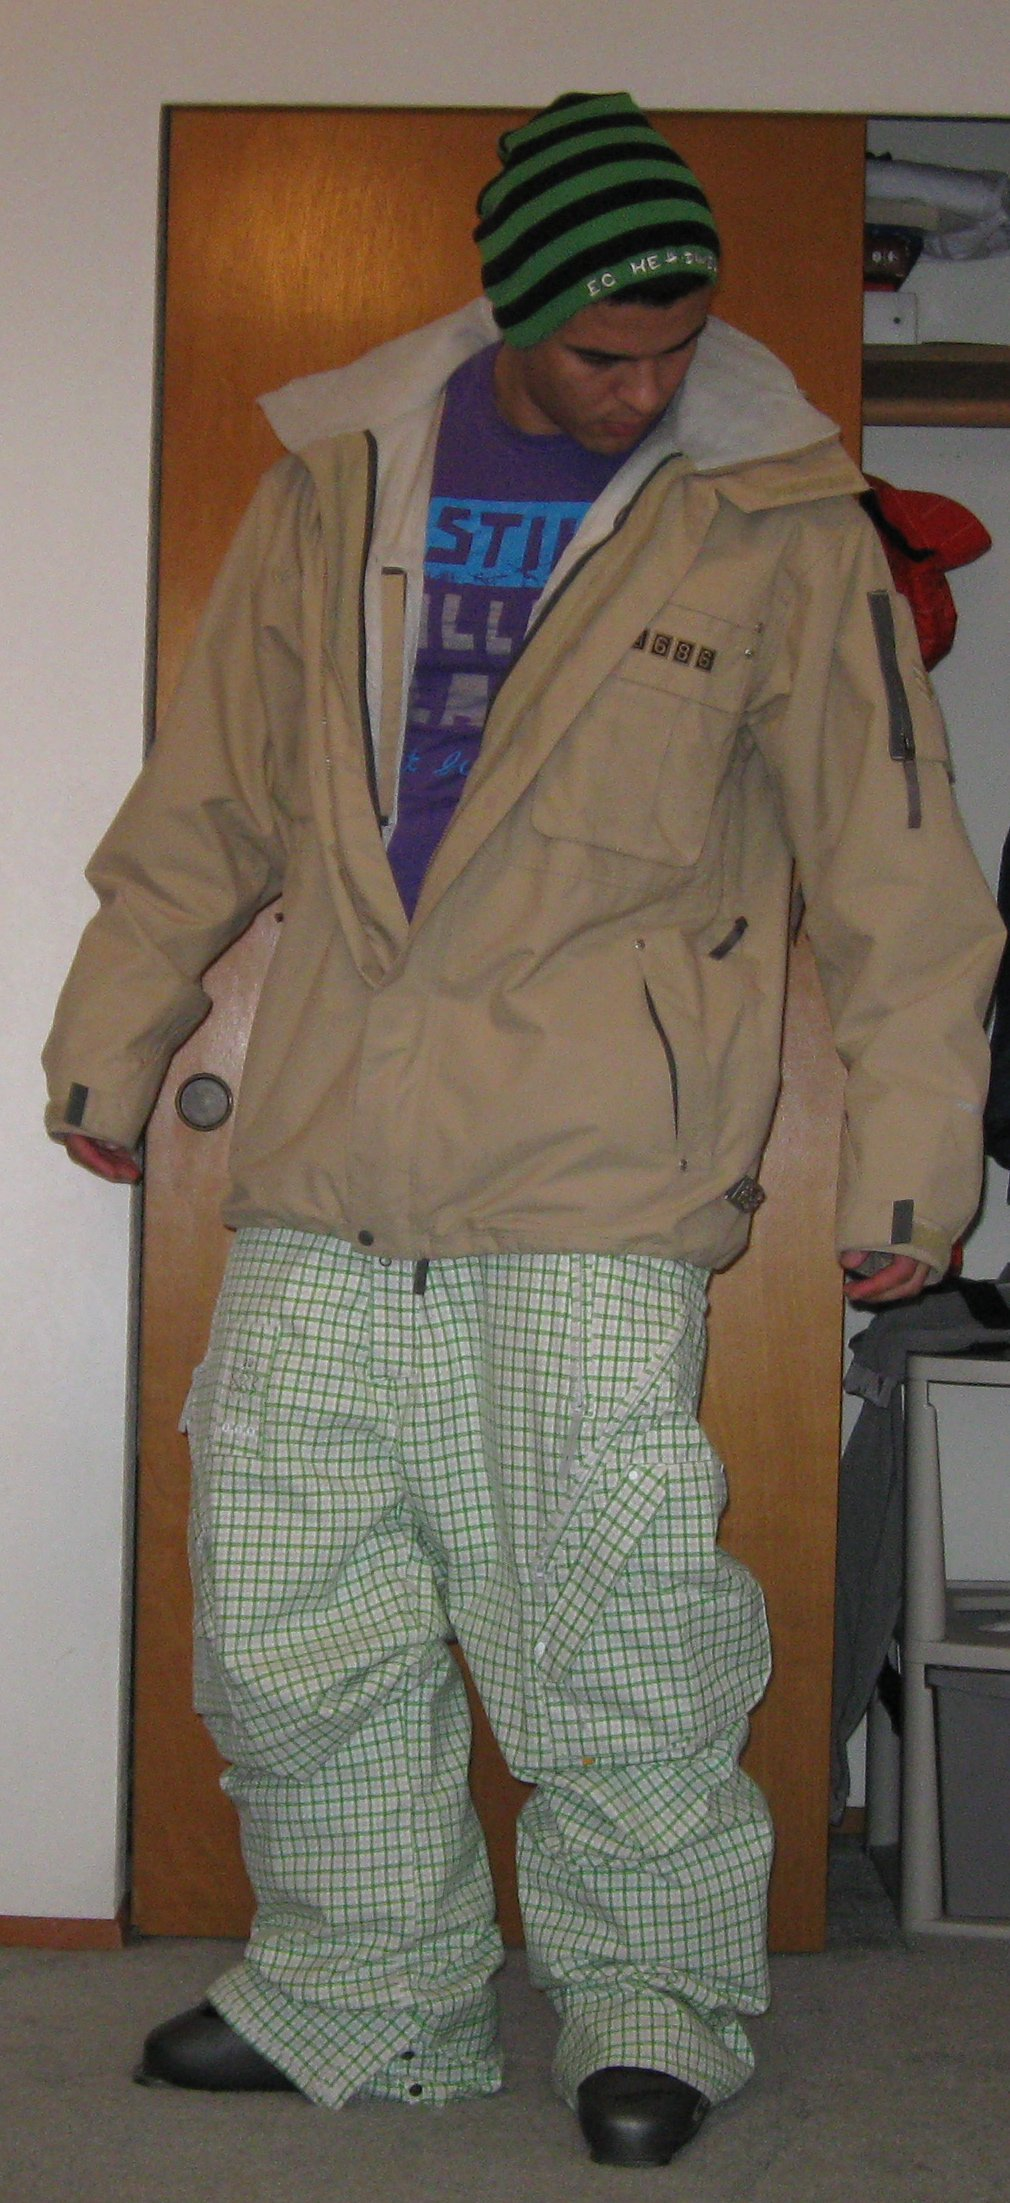 XXL 686 Smarty Troop 3-in-1 Jacket w/ XL Special Blend Annex pant